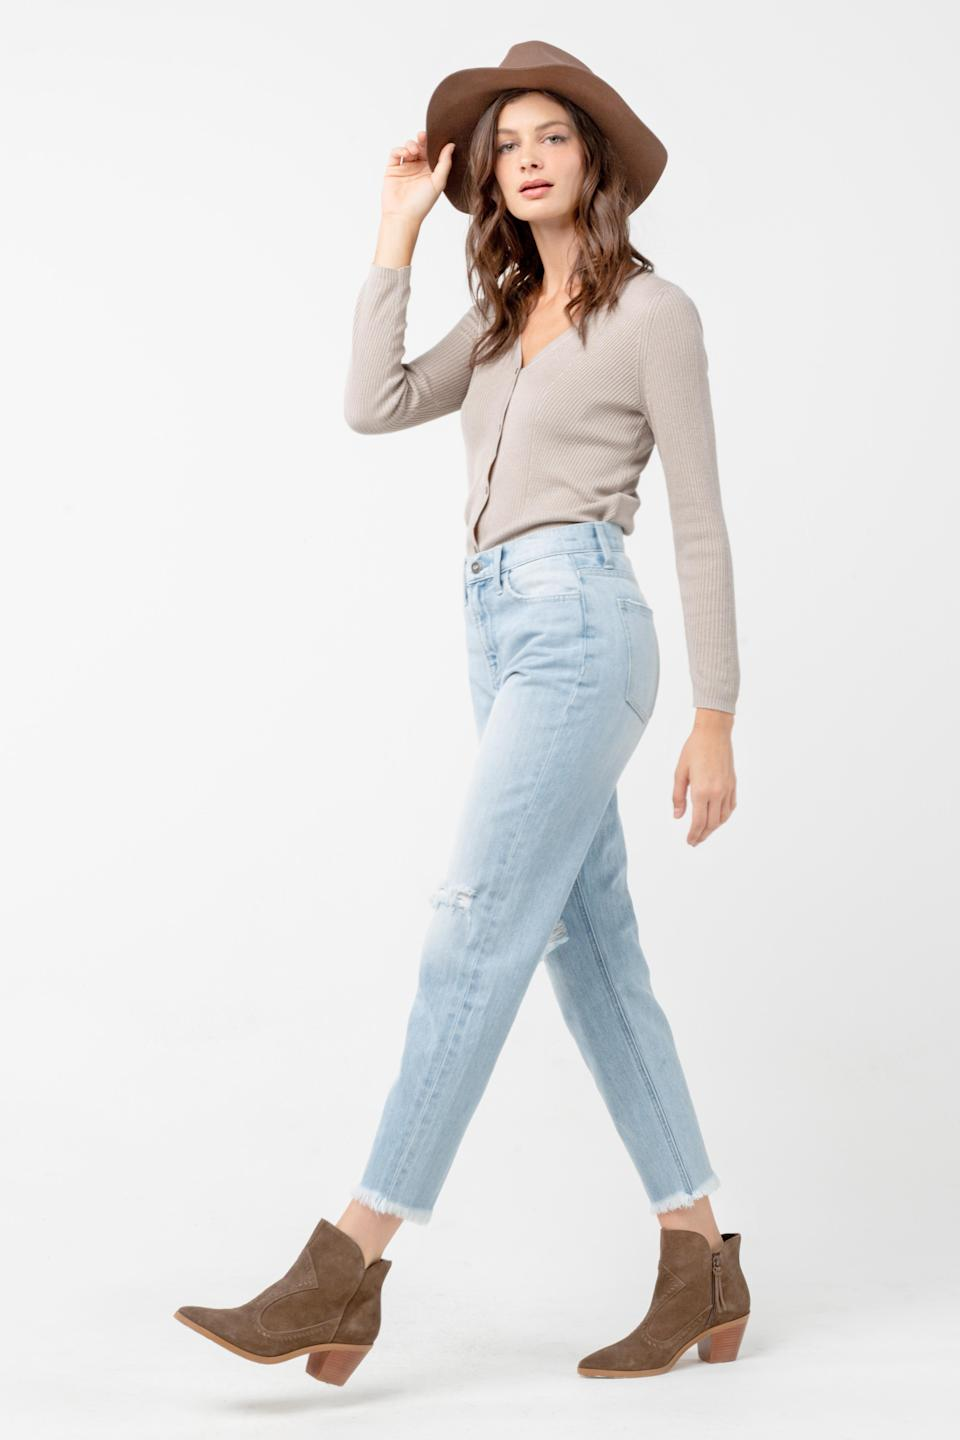 A pair of denim pants from Ceros Jeans - Credit: AC01